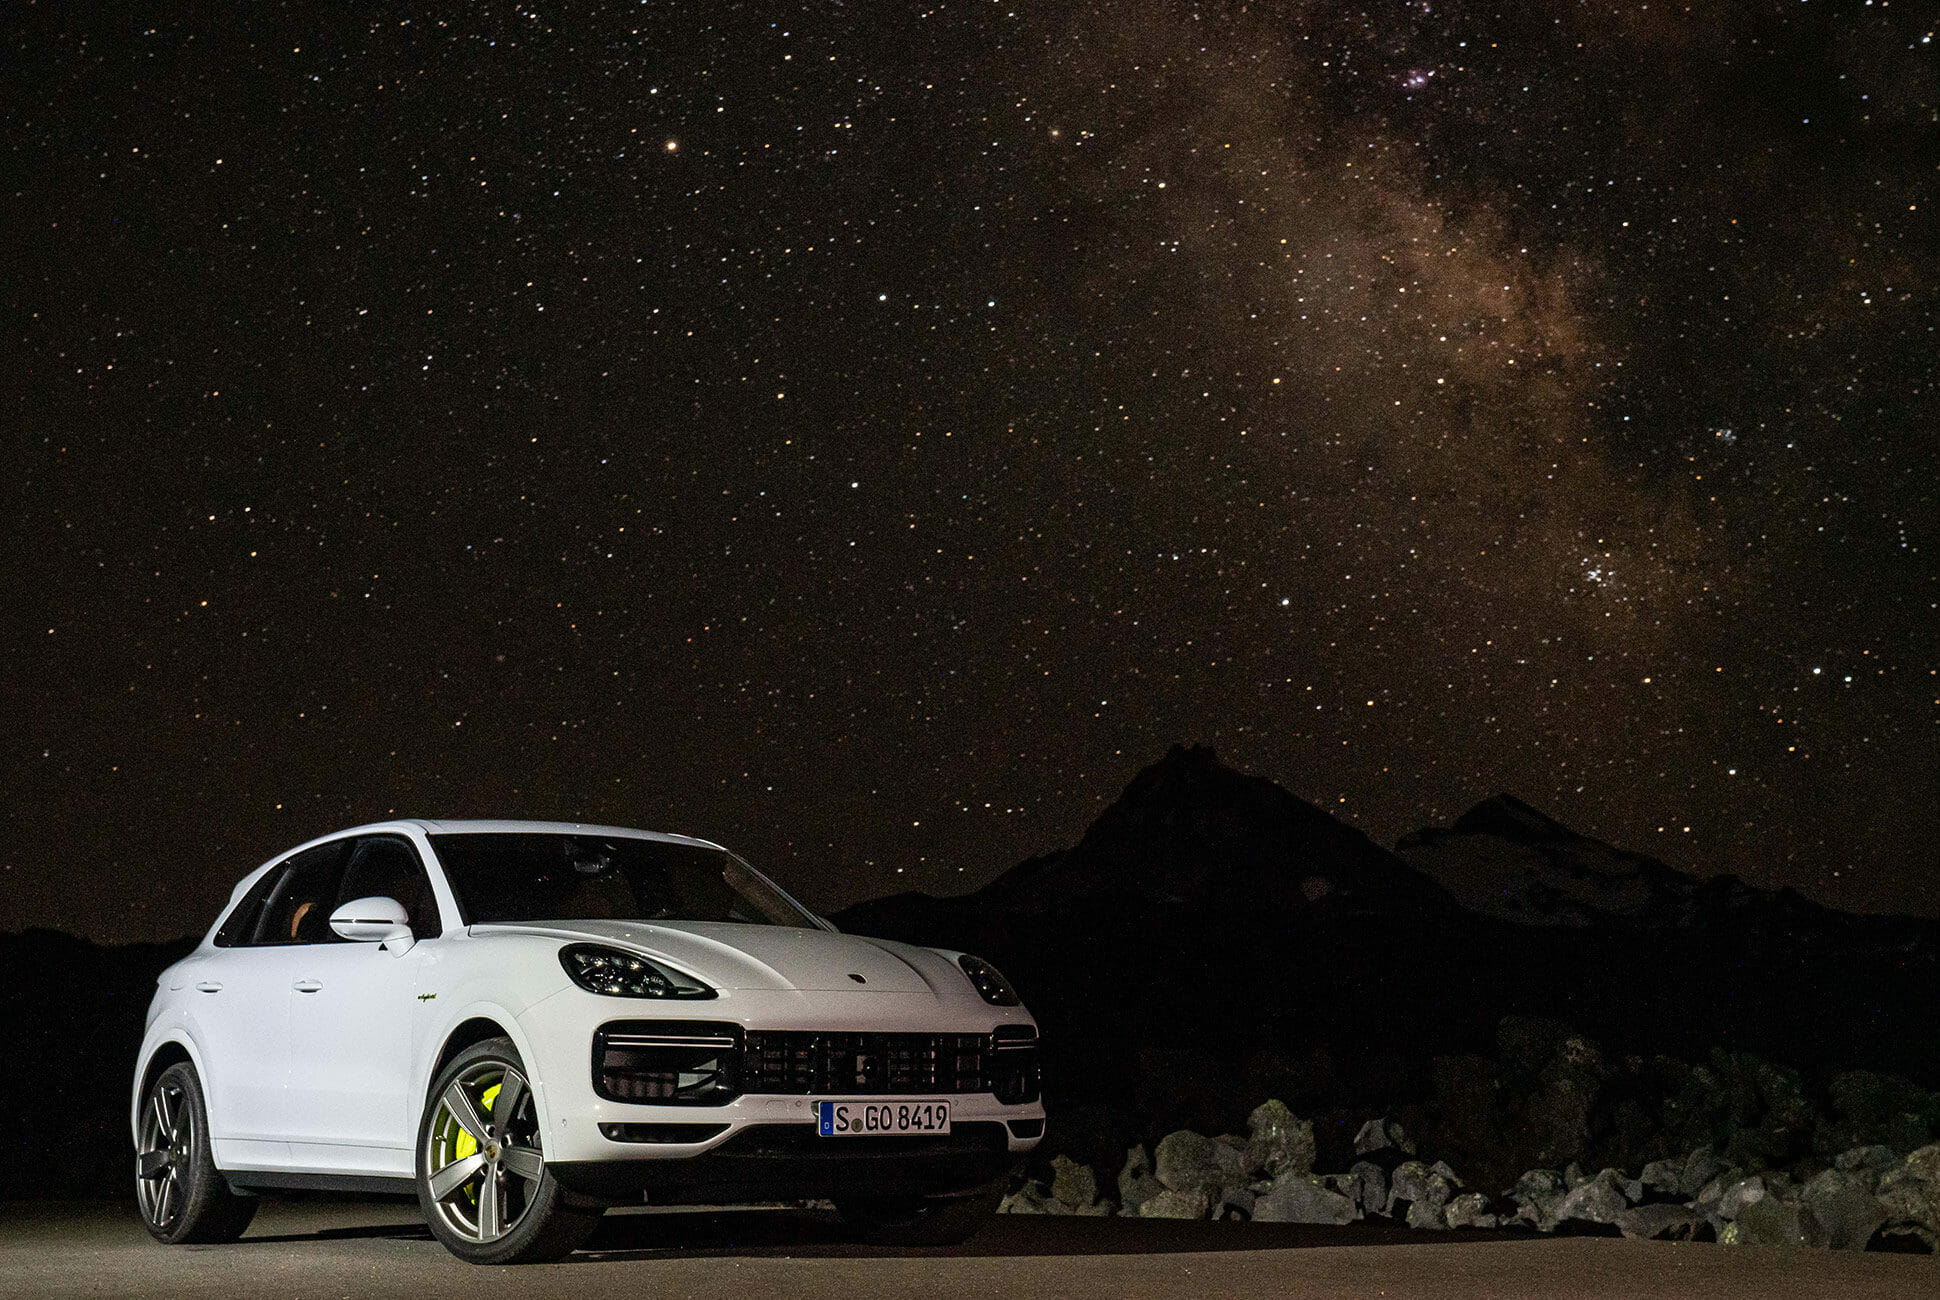 Pair-of-High-Tech-Porsche-Cayenne-Hybrids-gear-patrol-lead-slide-9